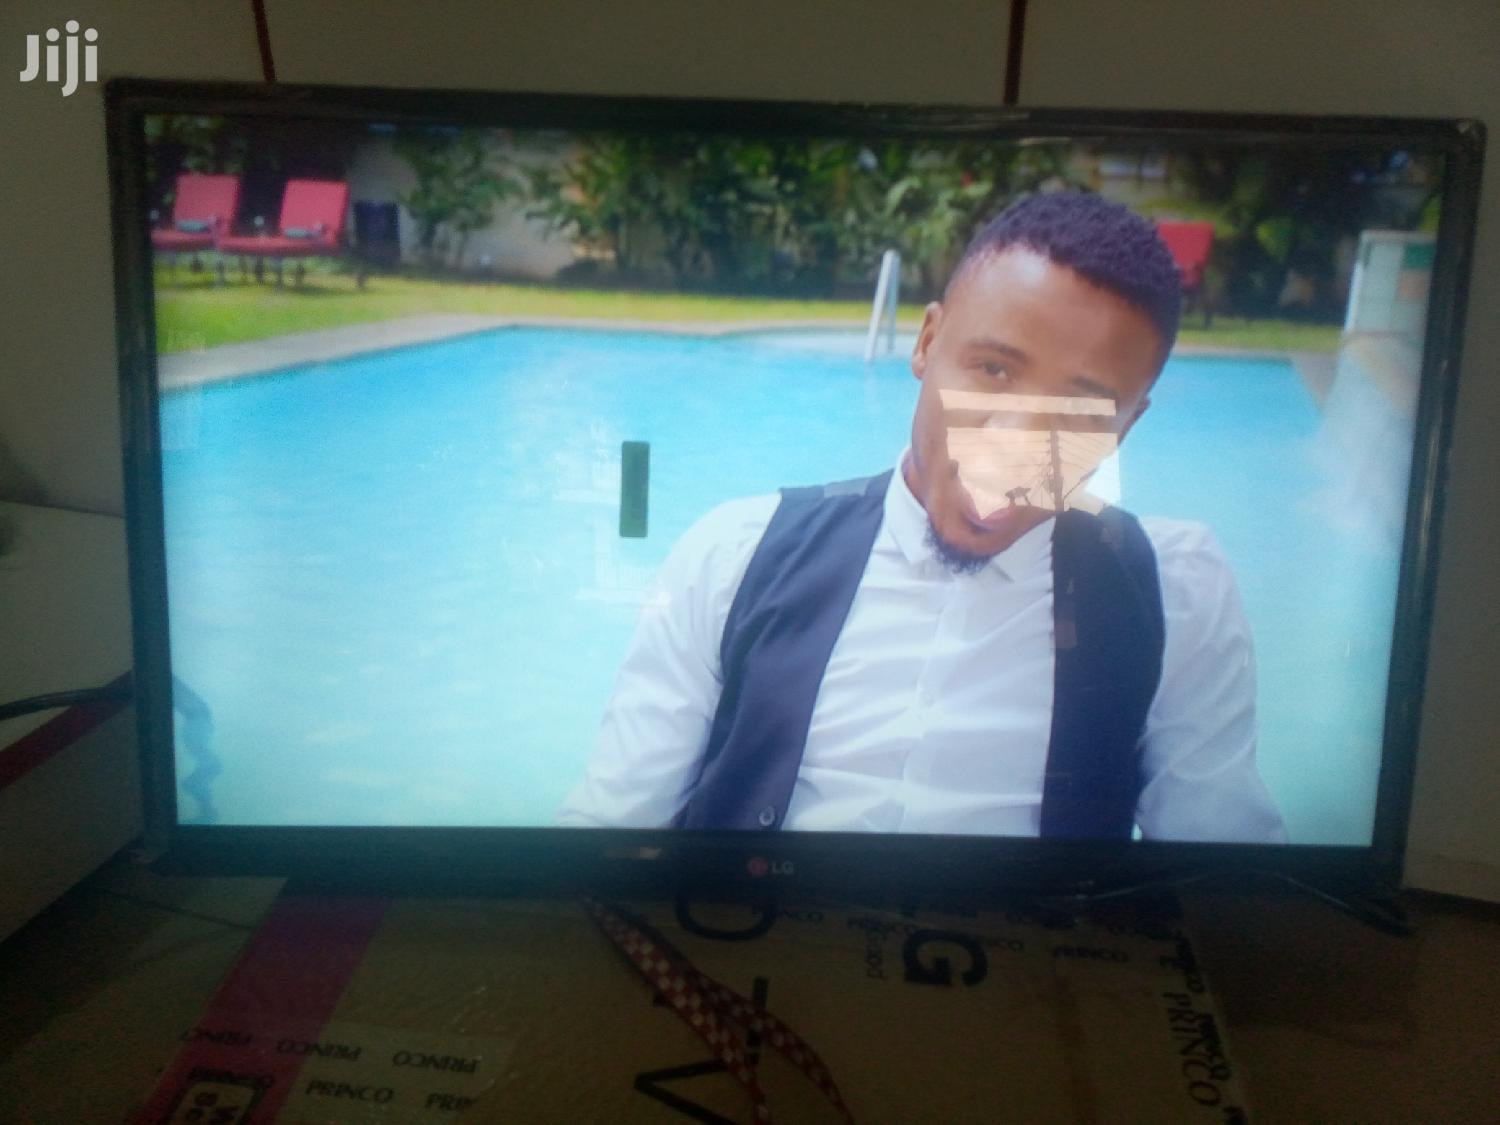 Brand New LG Digital TV 22 Inches